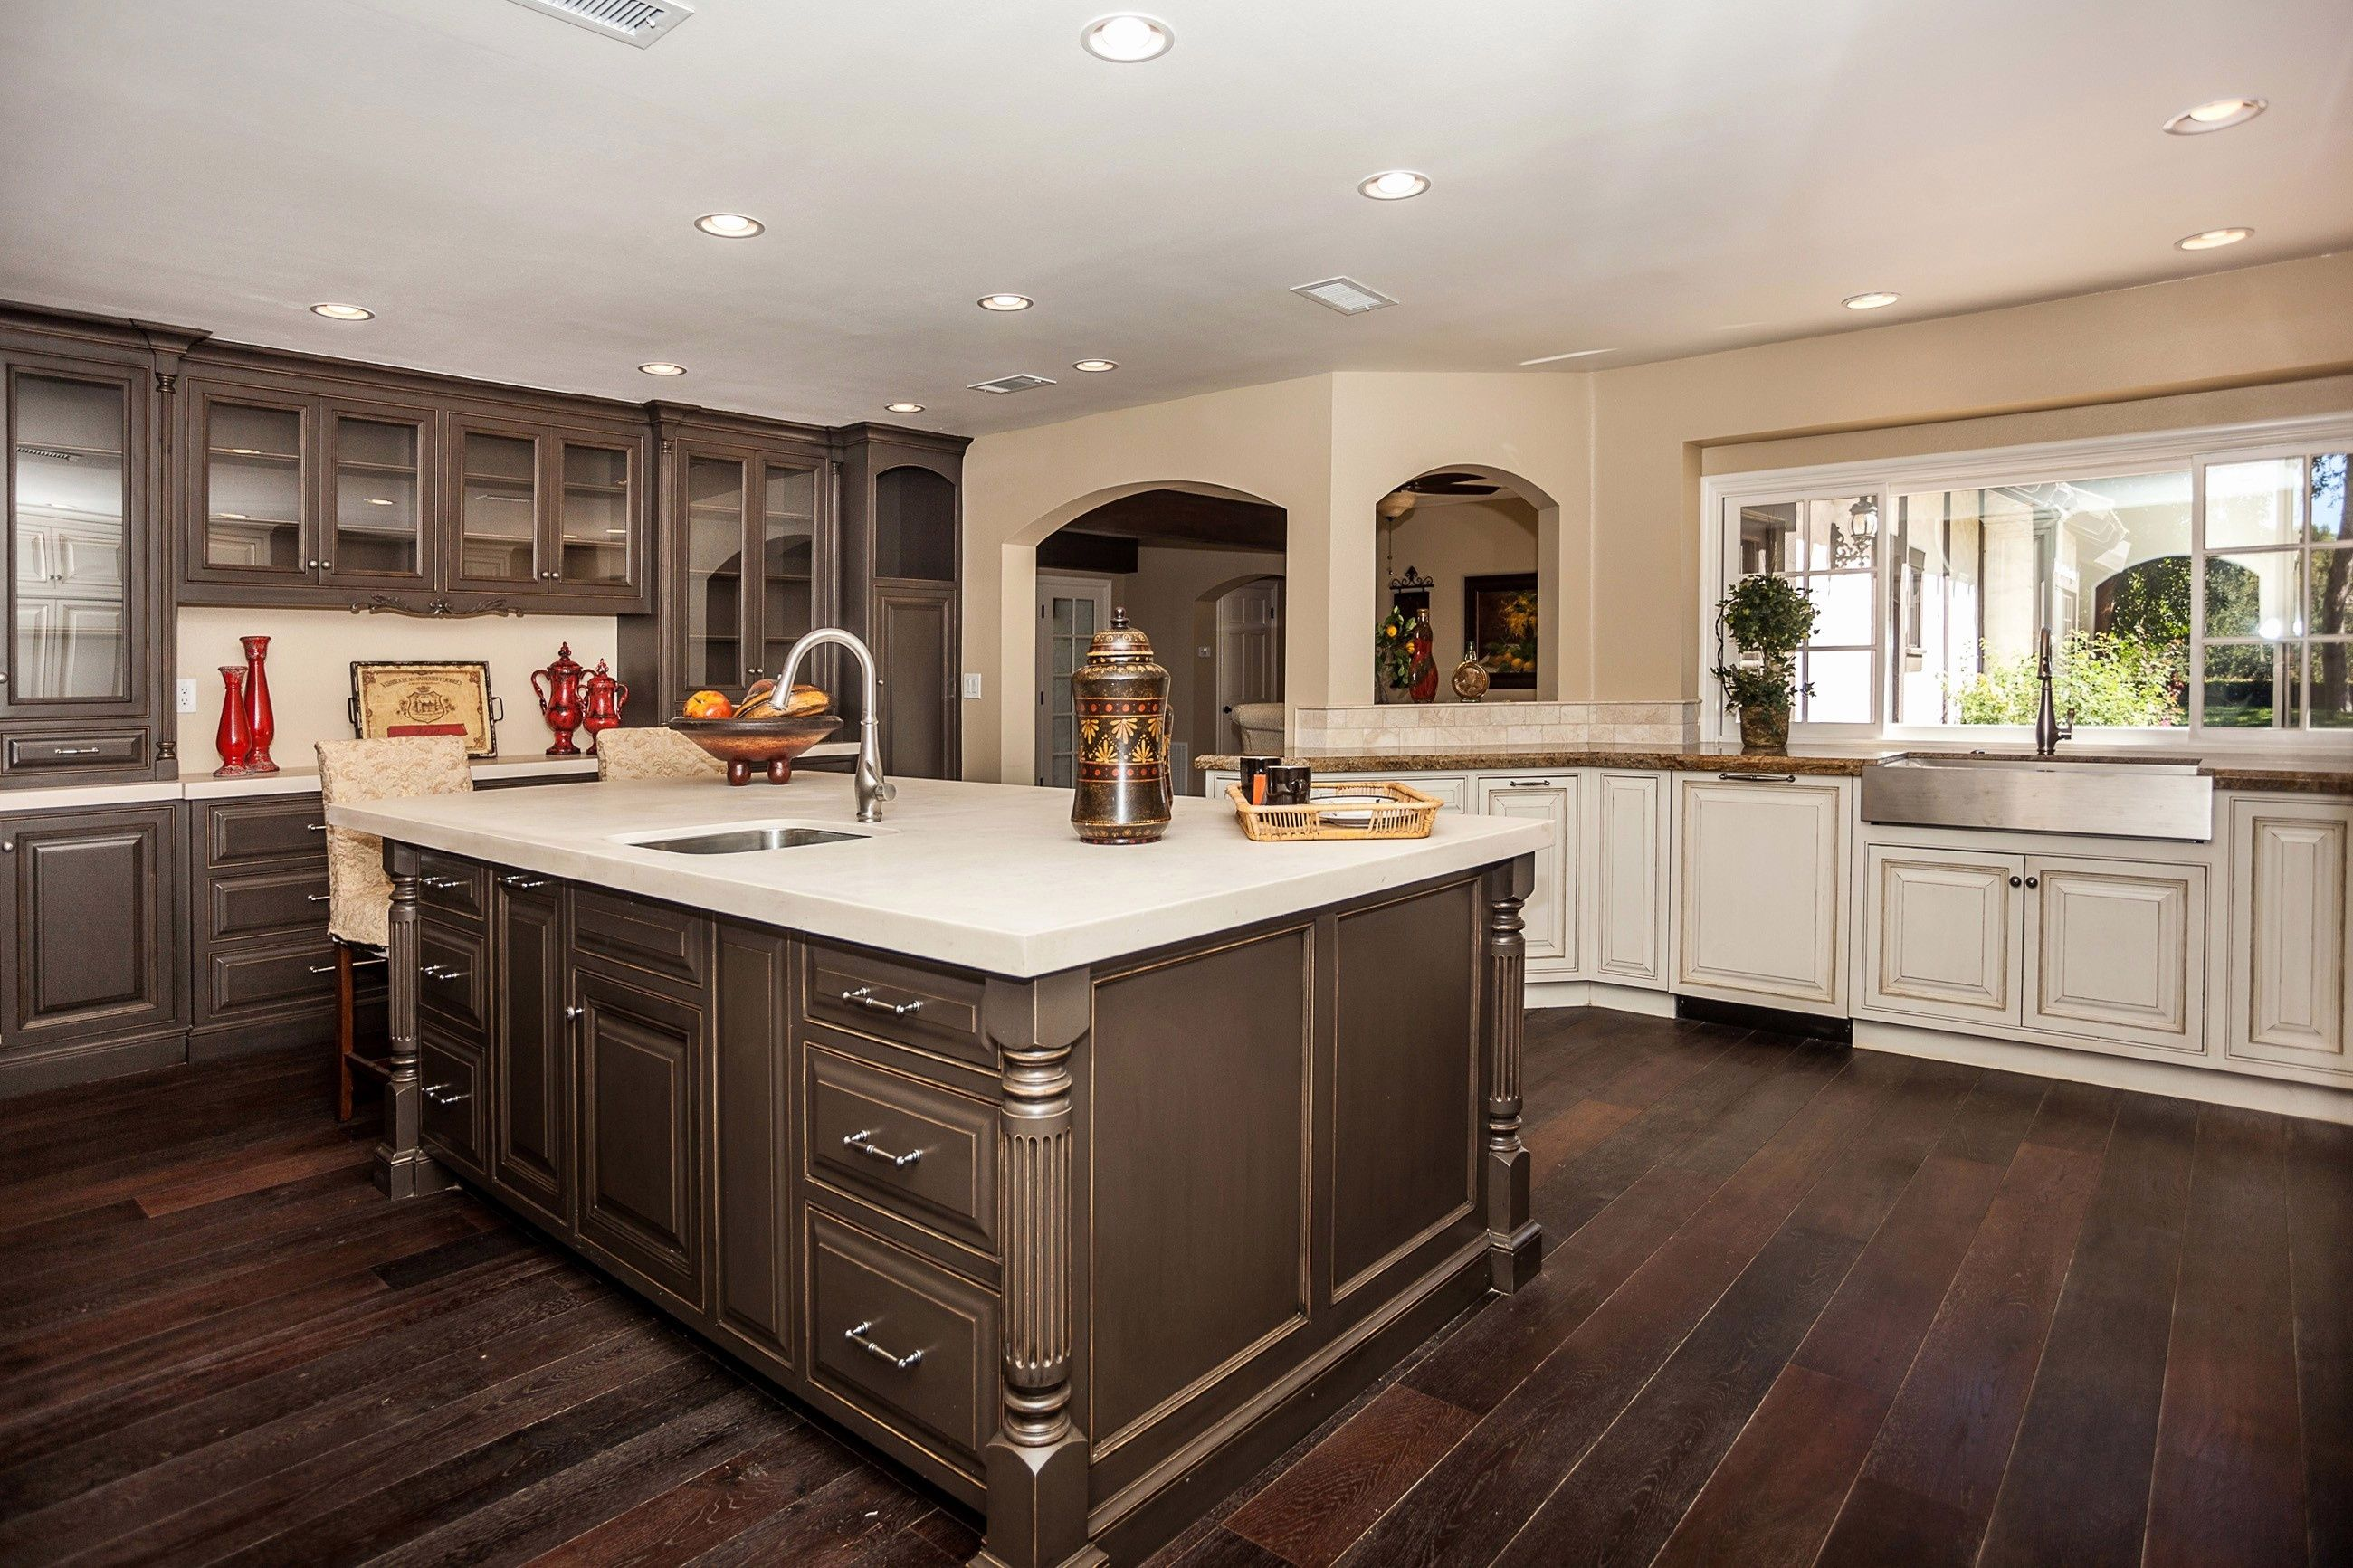 kitchen designs with dark lower cabinets and light upper ...